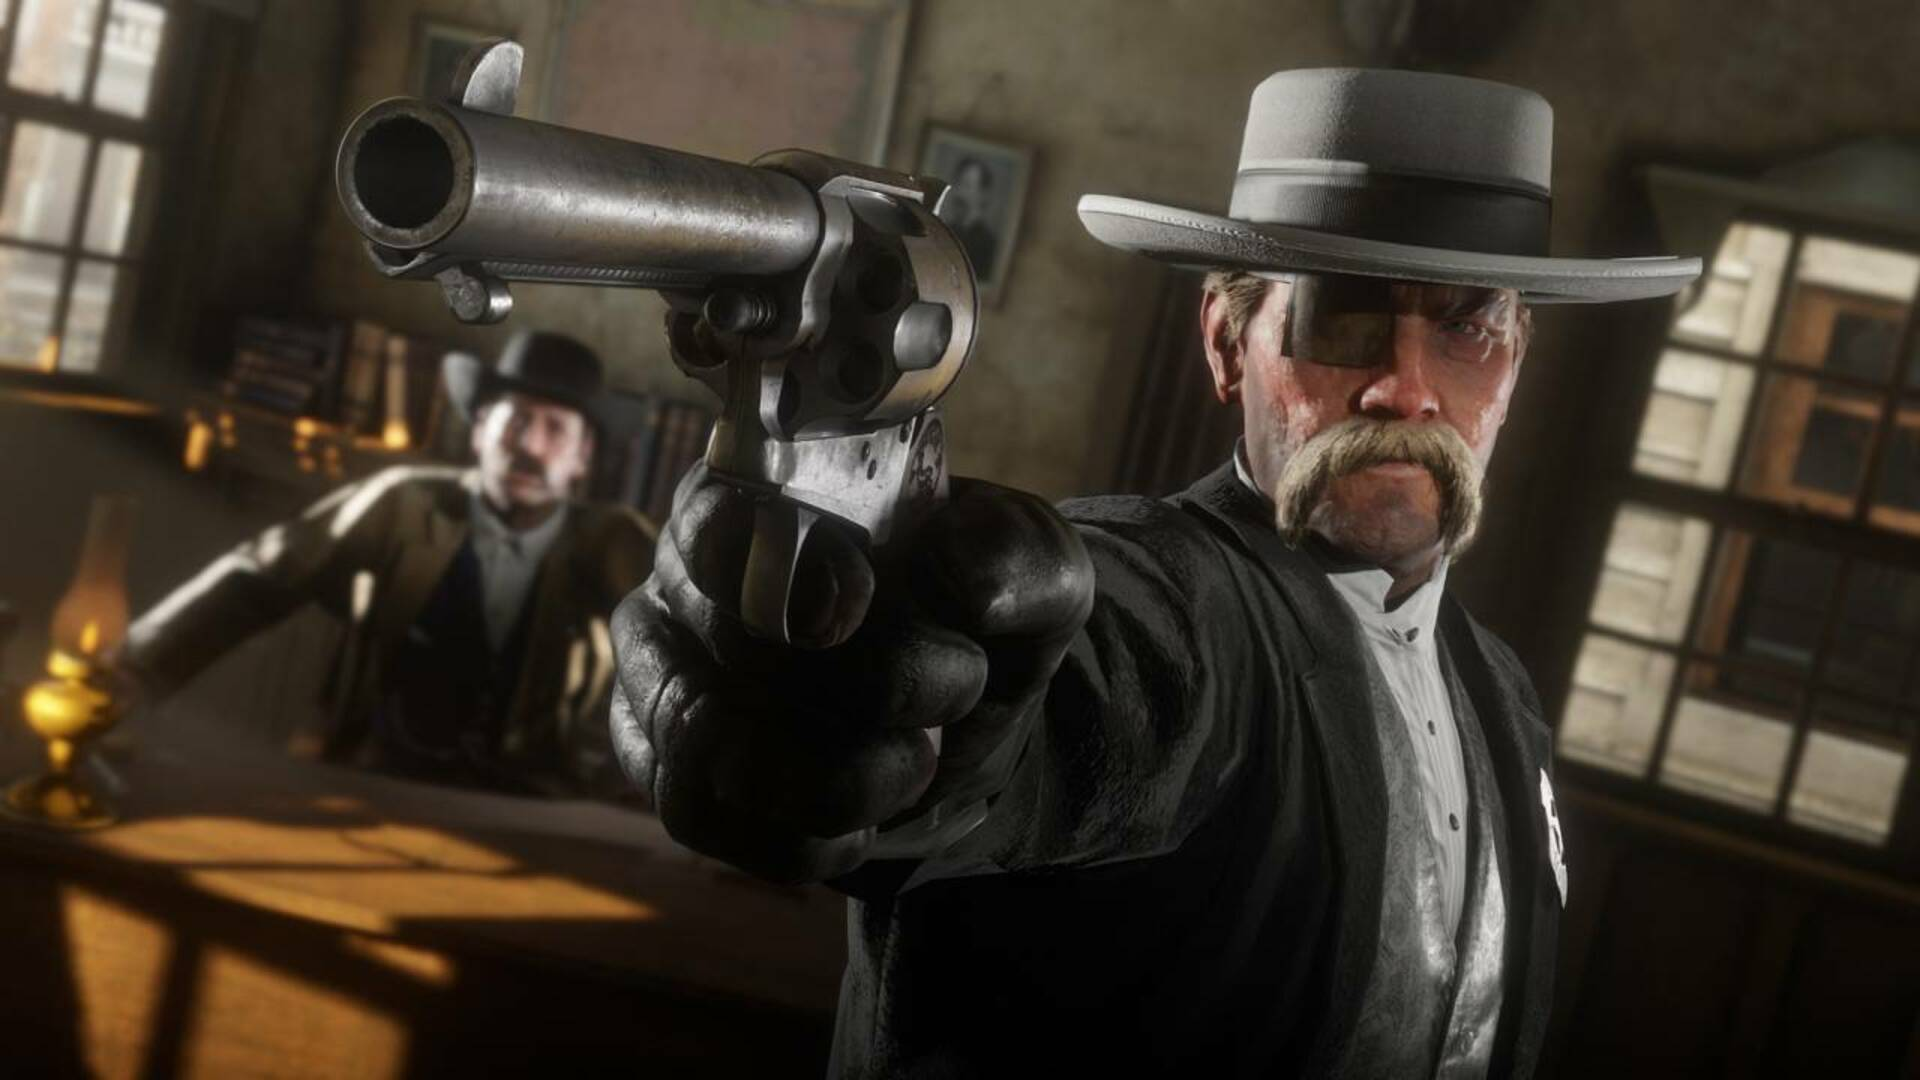 Red Dead Online is Officially Out of Beta, Rockstar Confirms